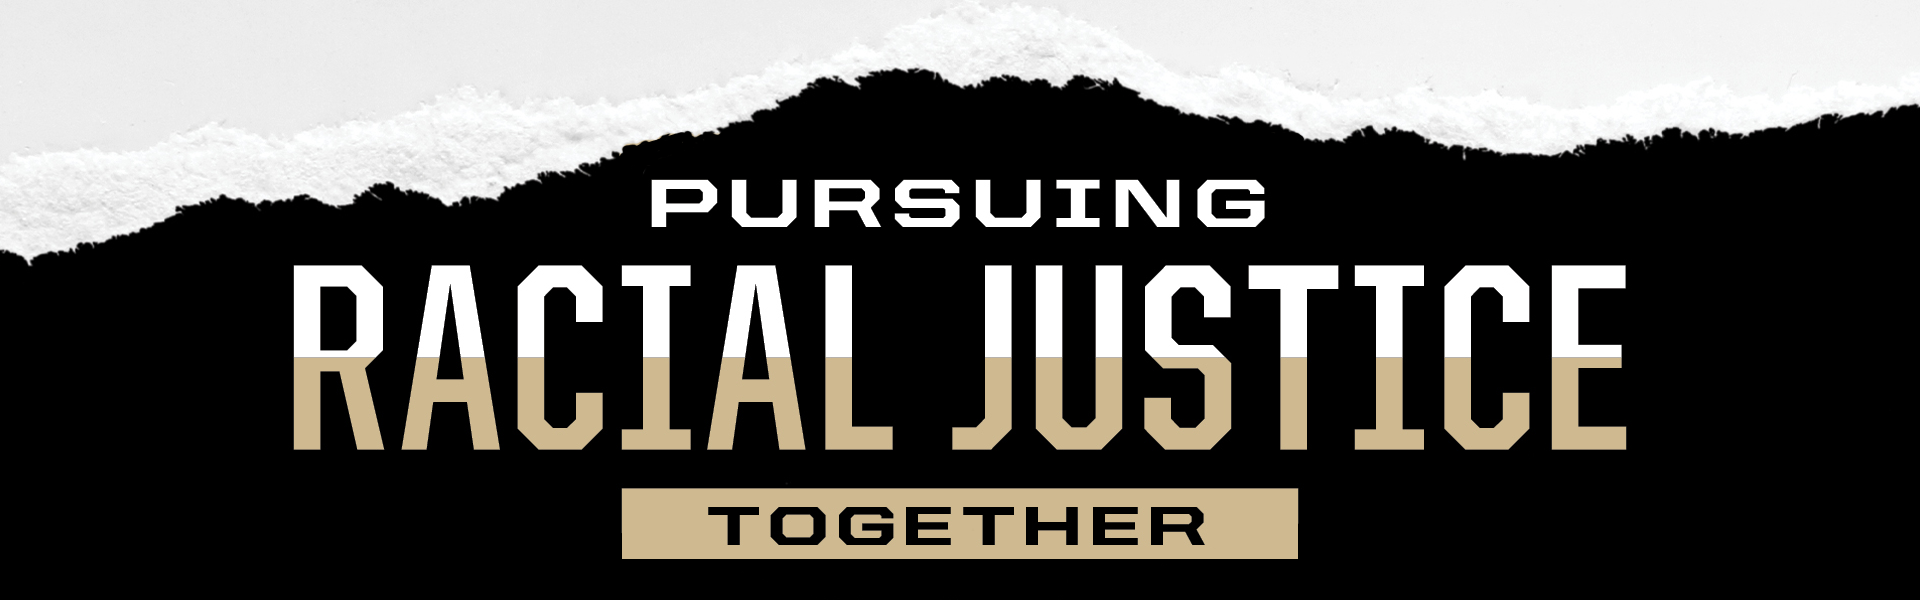 Pursuing Racial Justice Together